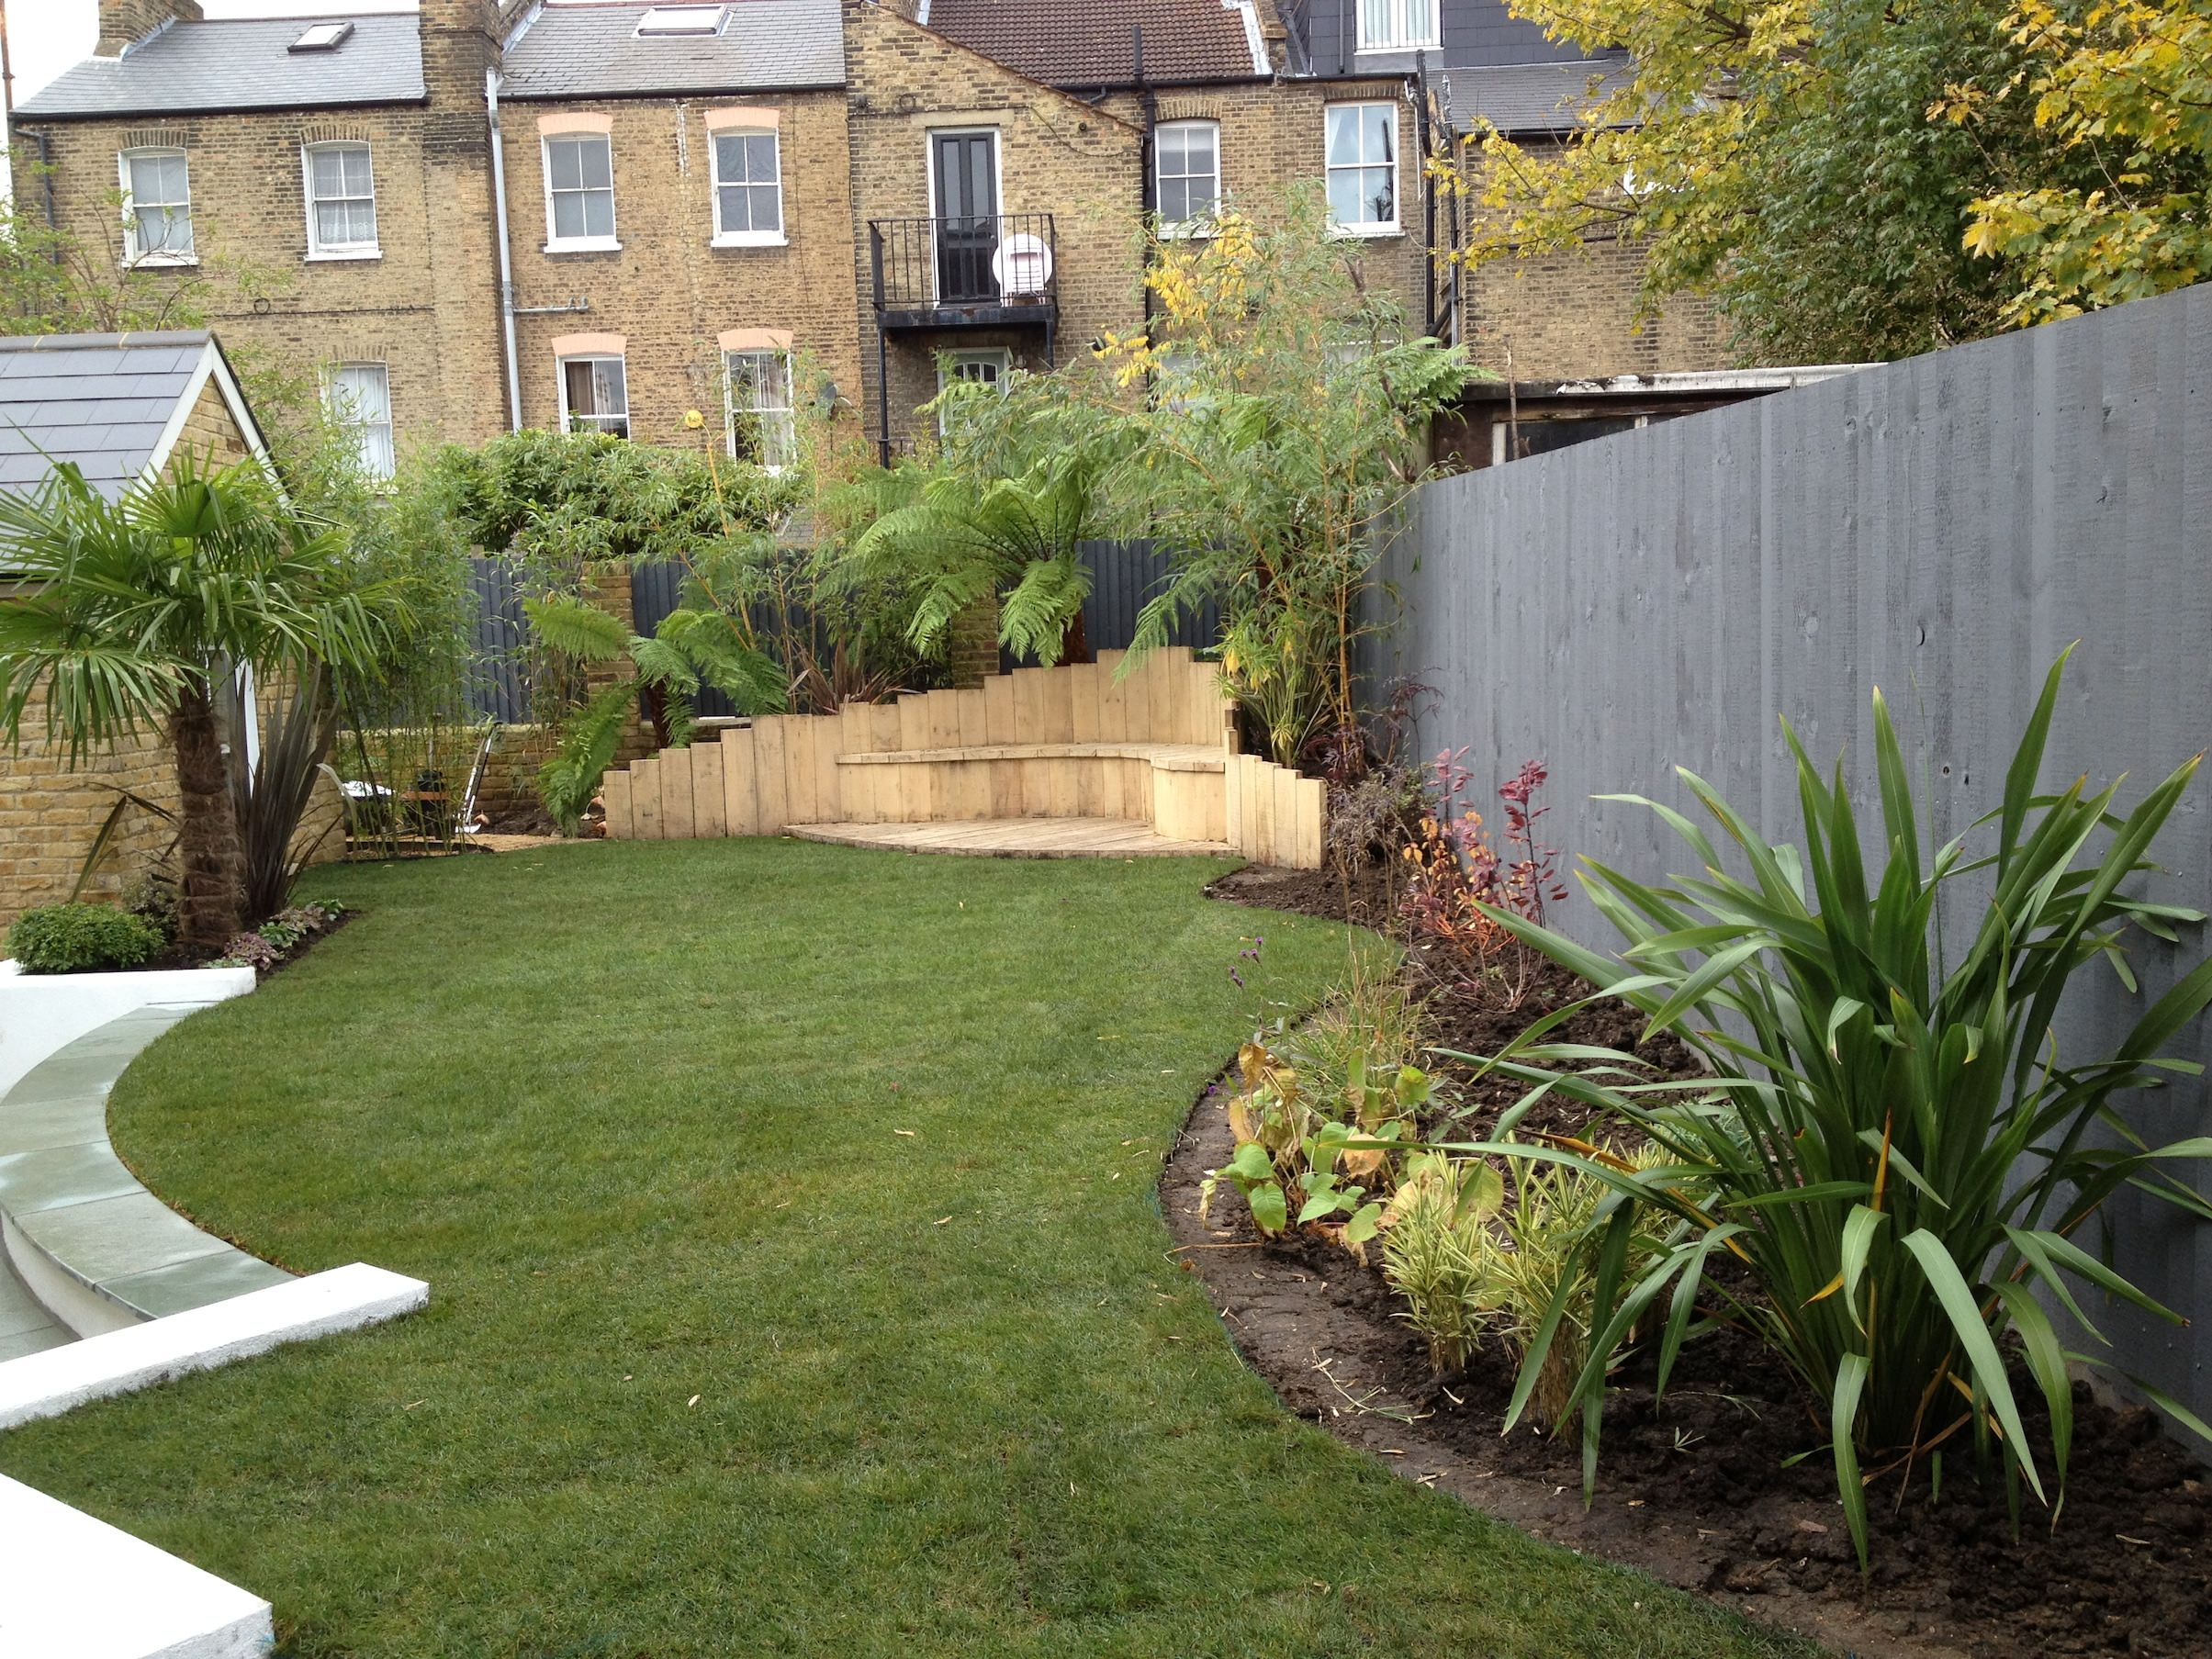 Low maintenance garden designs garden club london for Garden design ideas